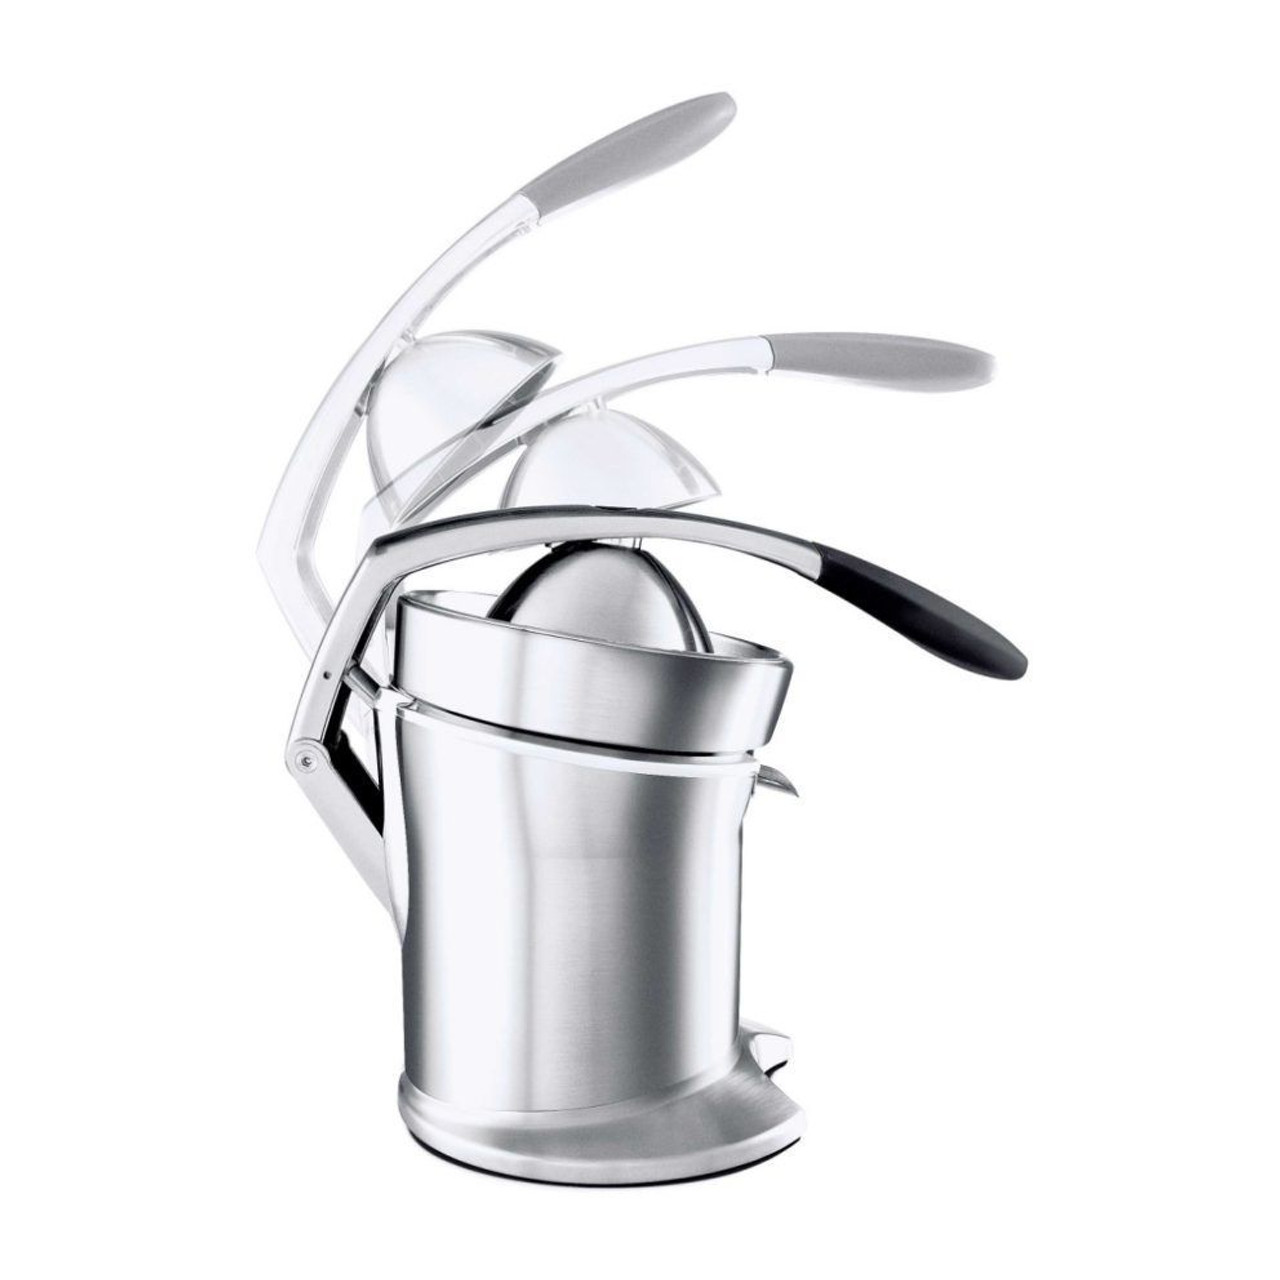 Breville 800CPBSS the Citrus Press Pro with Quadra-Fin Juicing Cone- RRP $279.95